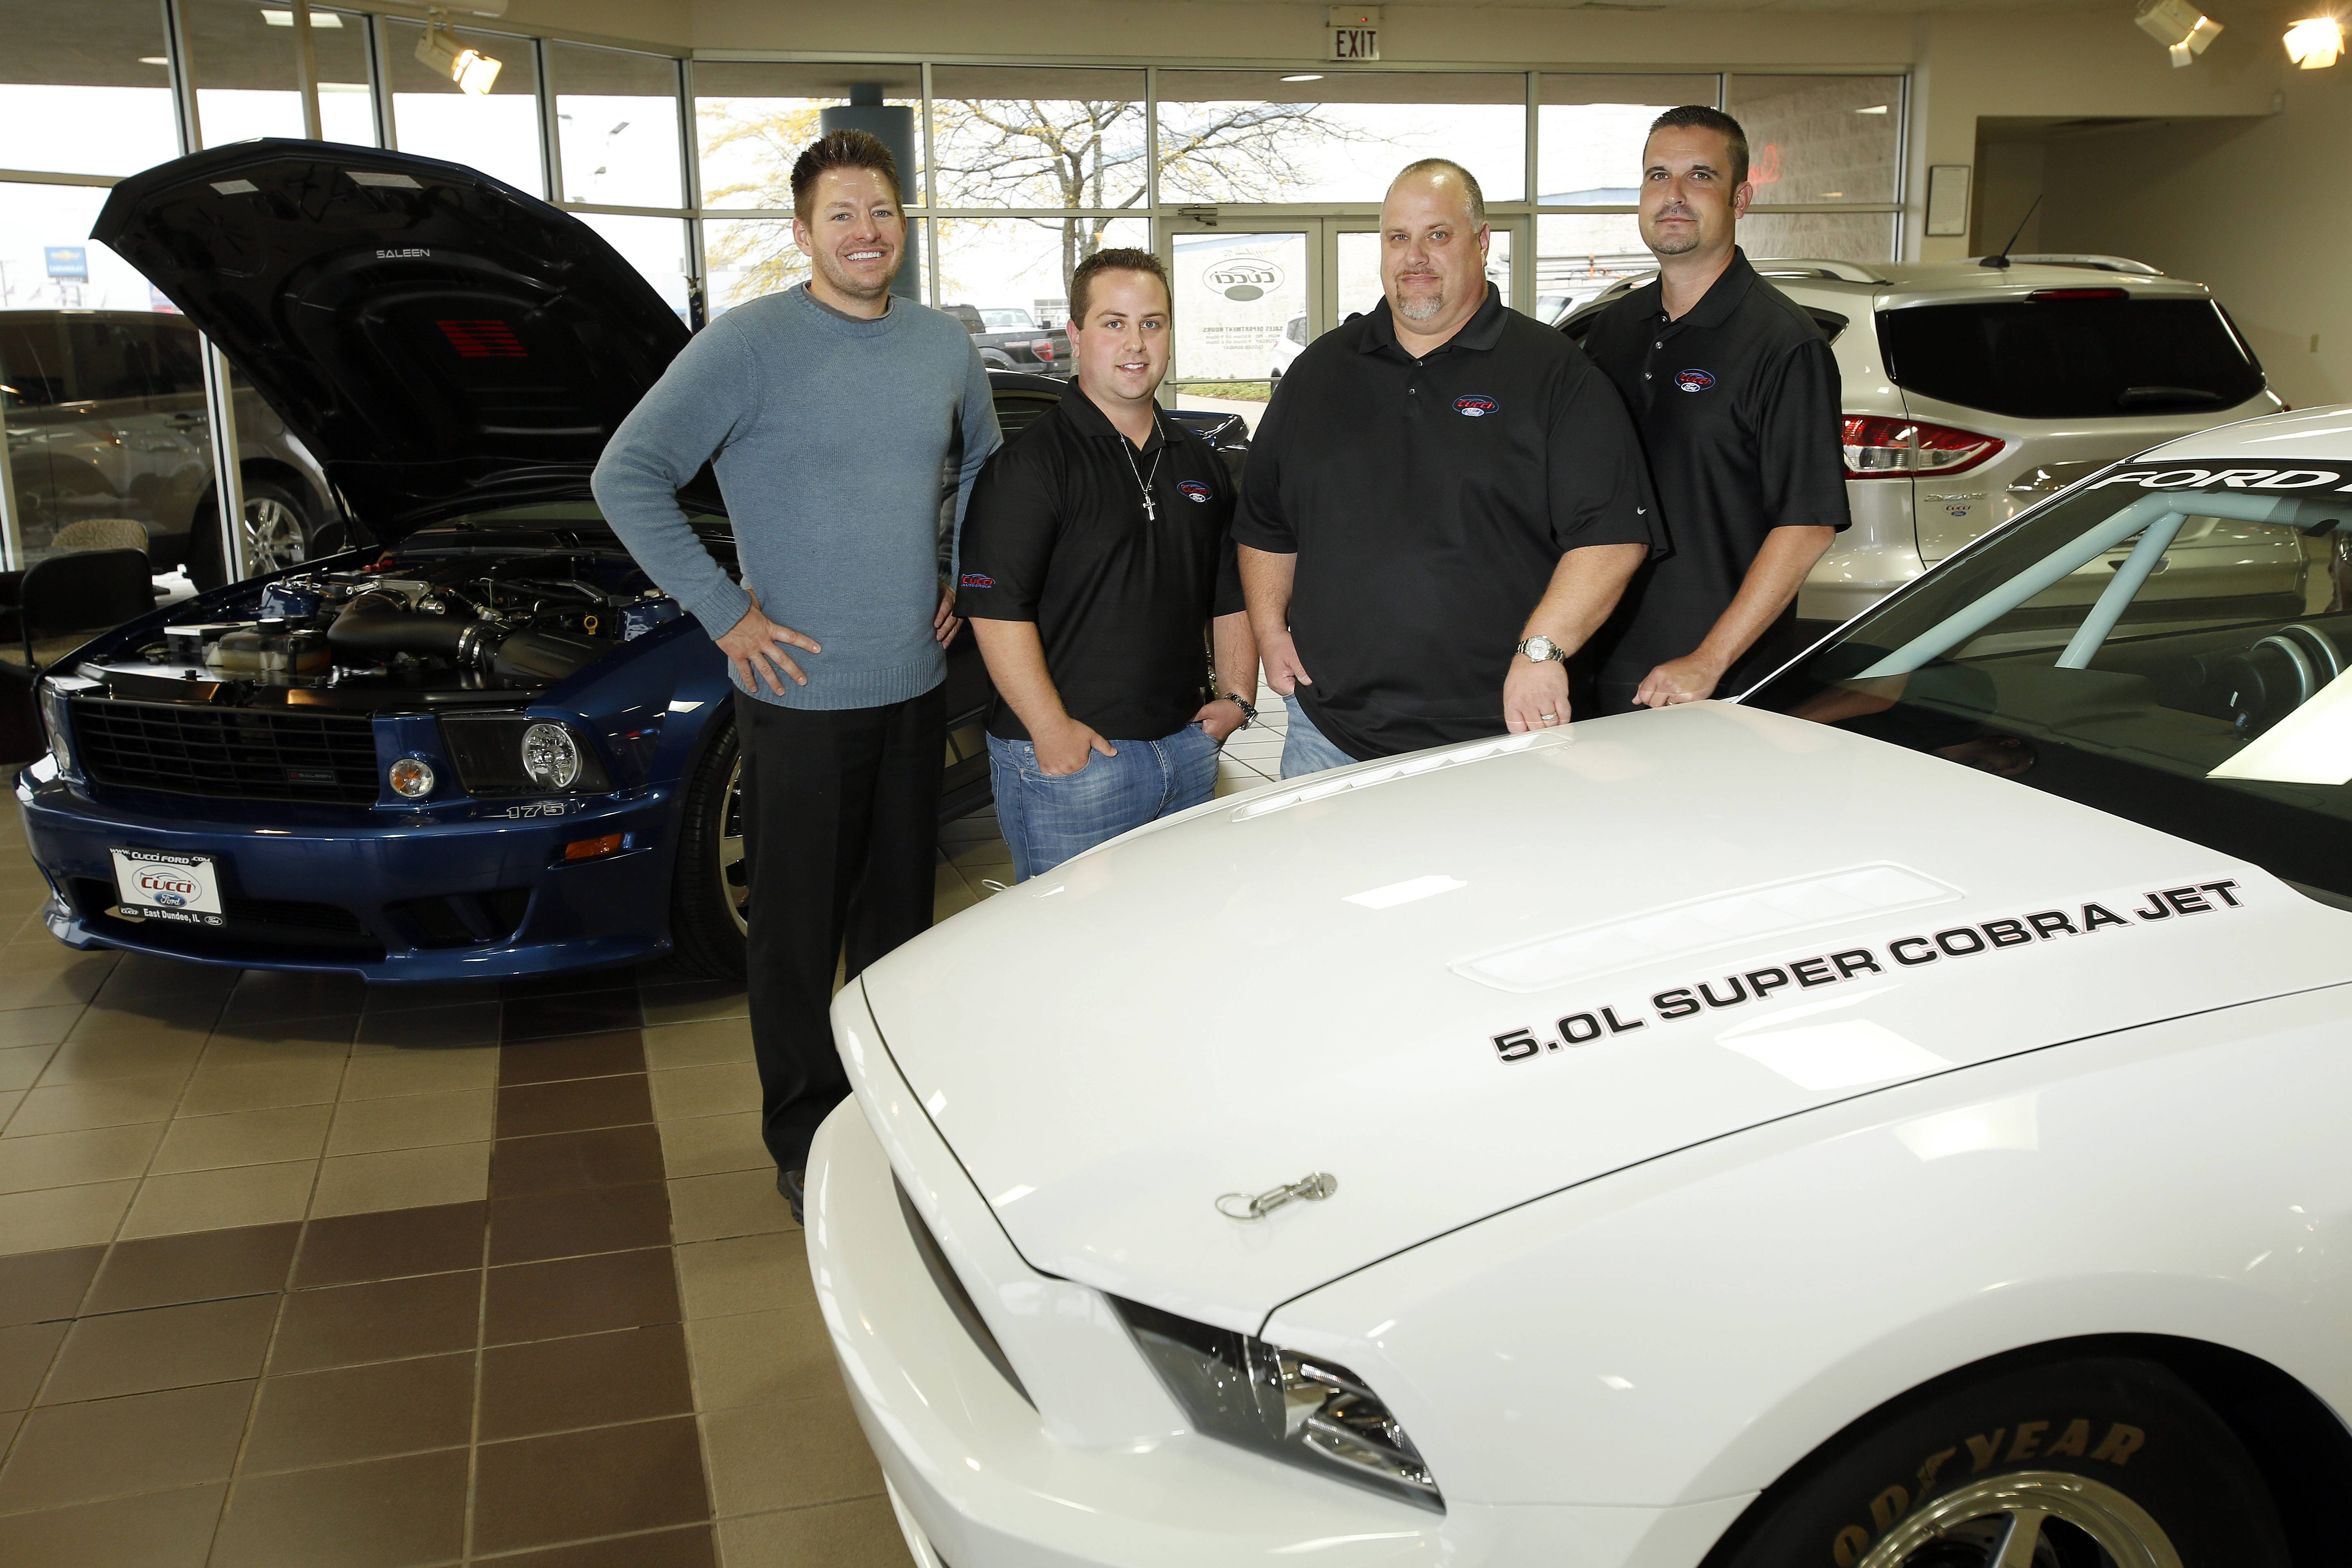 Mitch Lewandowski, from left, Nicholas Cucci, Theodore Cucci, and Neil Becker of Cucci Ford in East Dundee Tuesday.